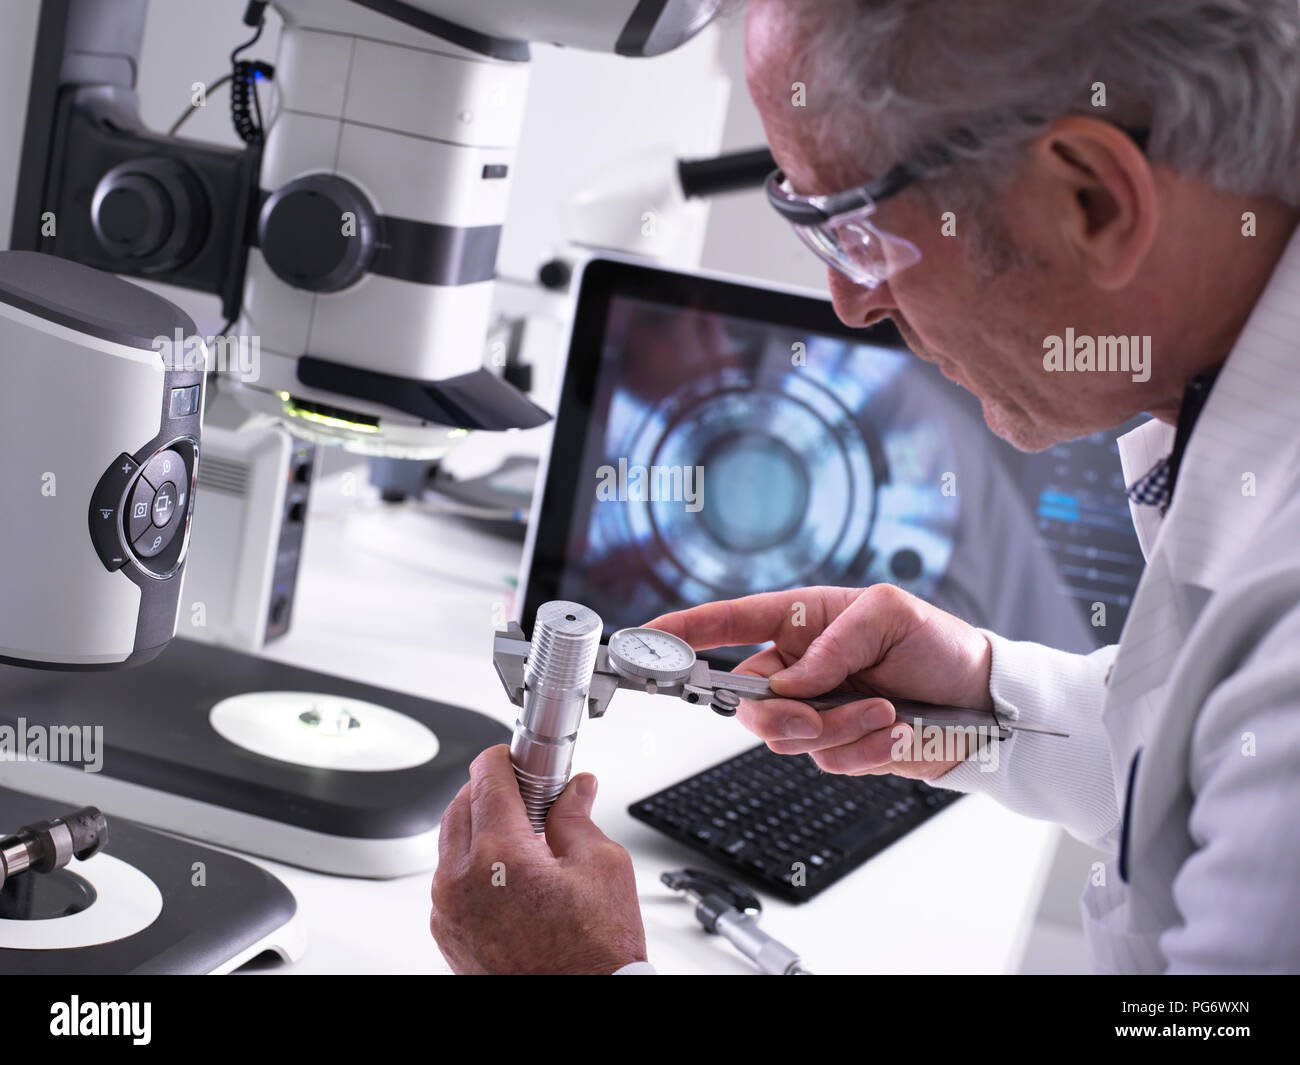 Engineer using a dial calliper and a 3d stereo microscope for quality control in the manufacturing of engineering components for industry - Stock Image